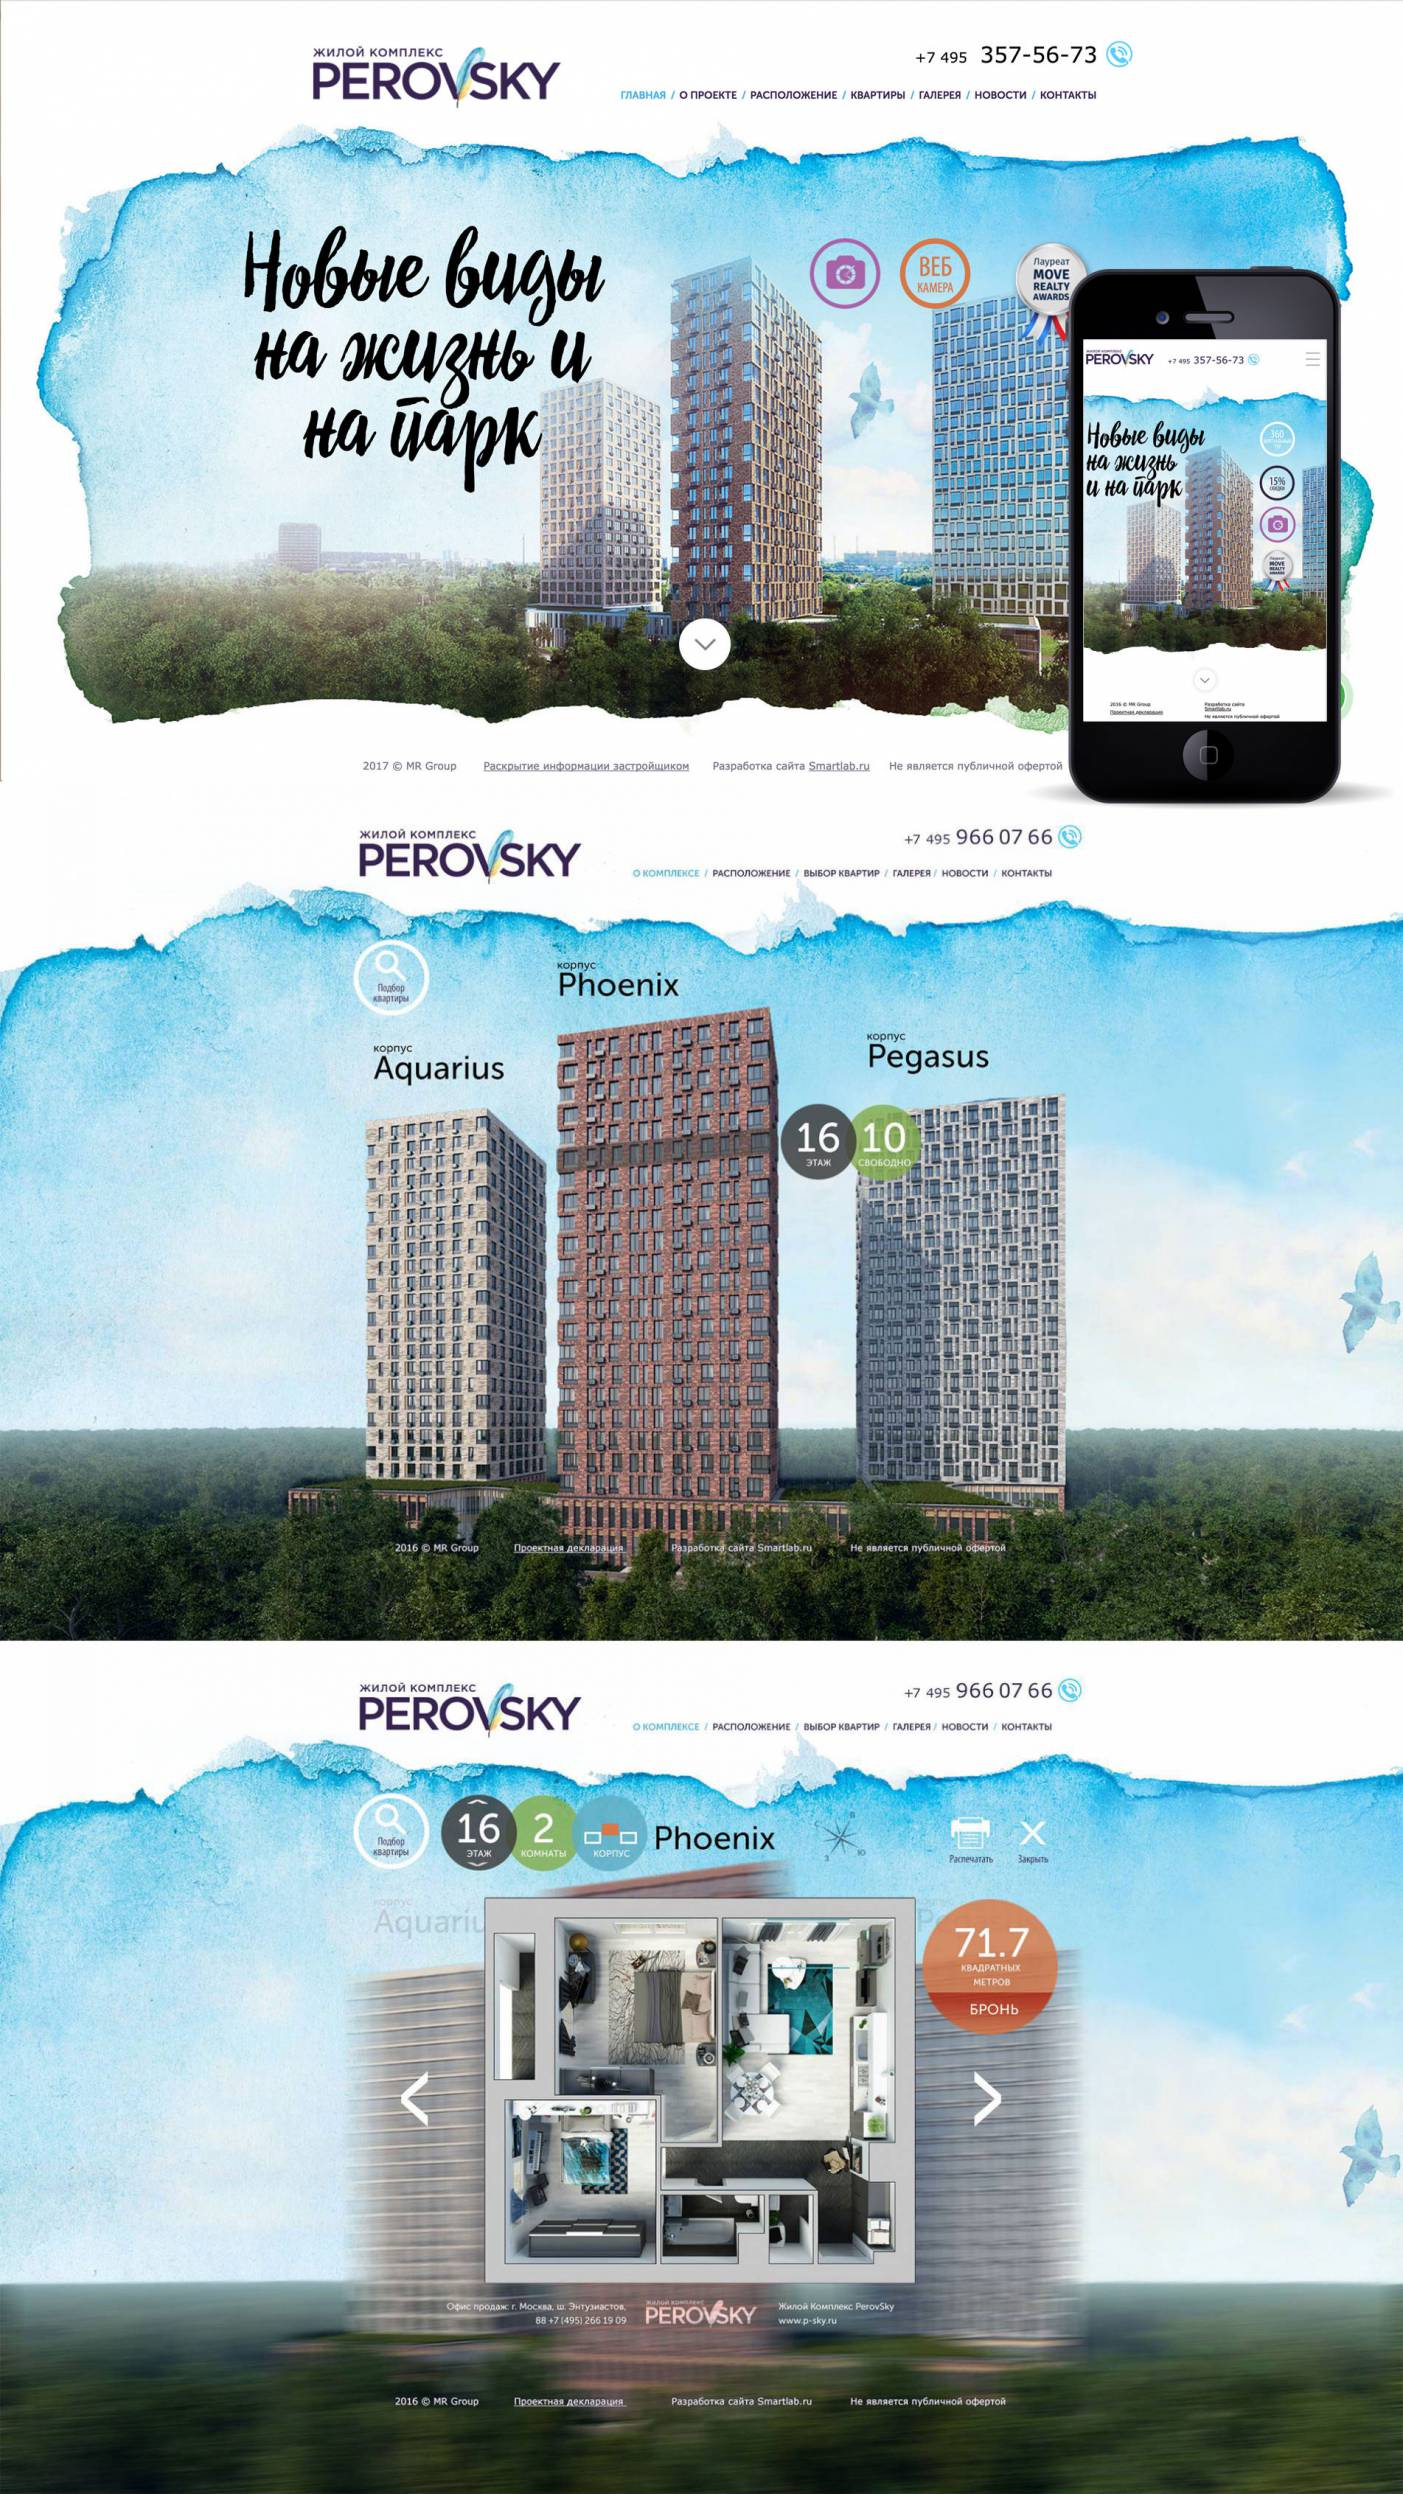 Development of a new site for a residential complex Perovsky